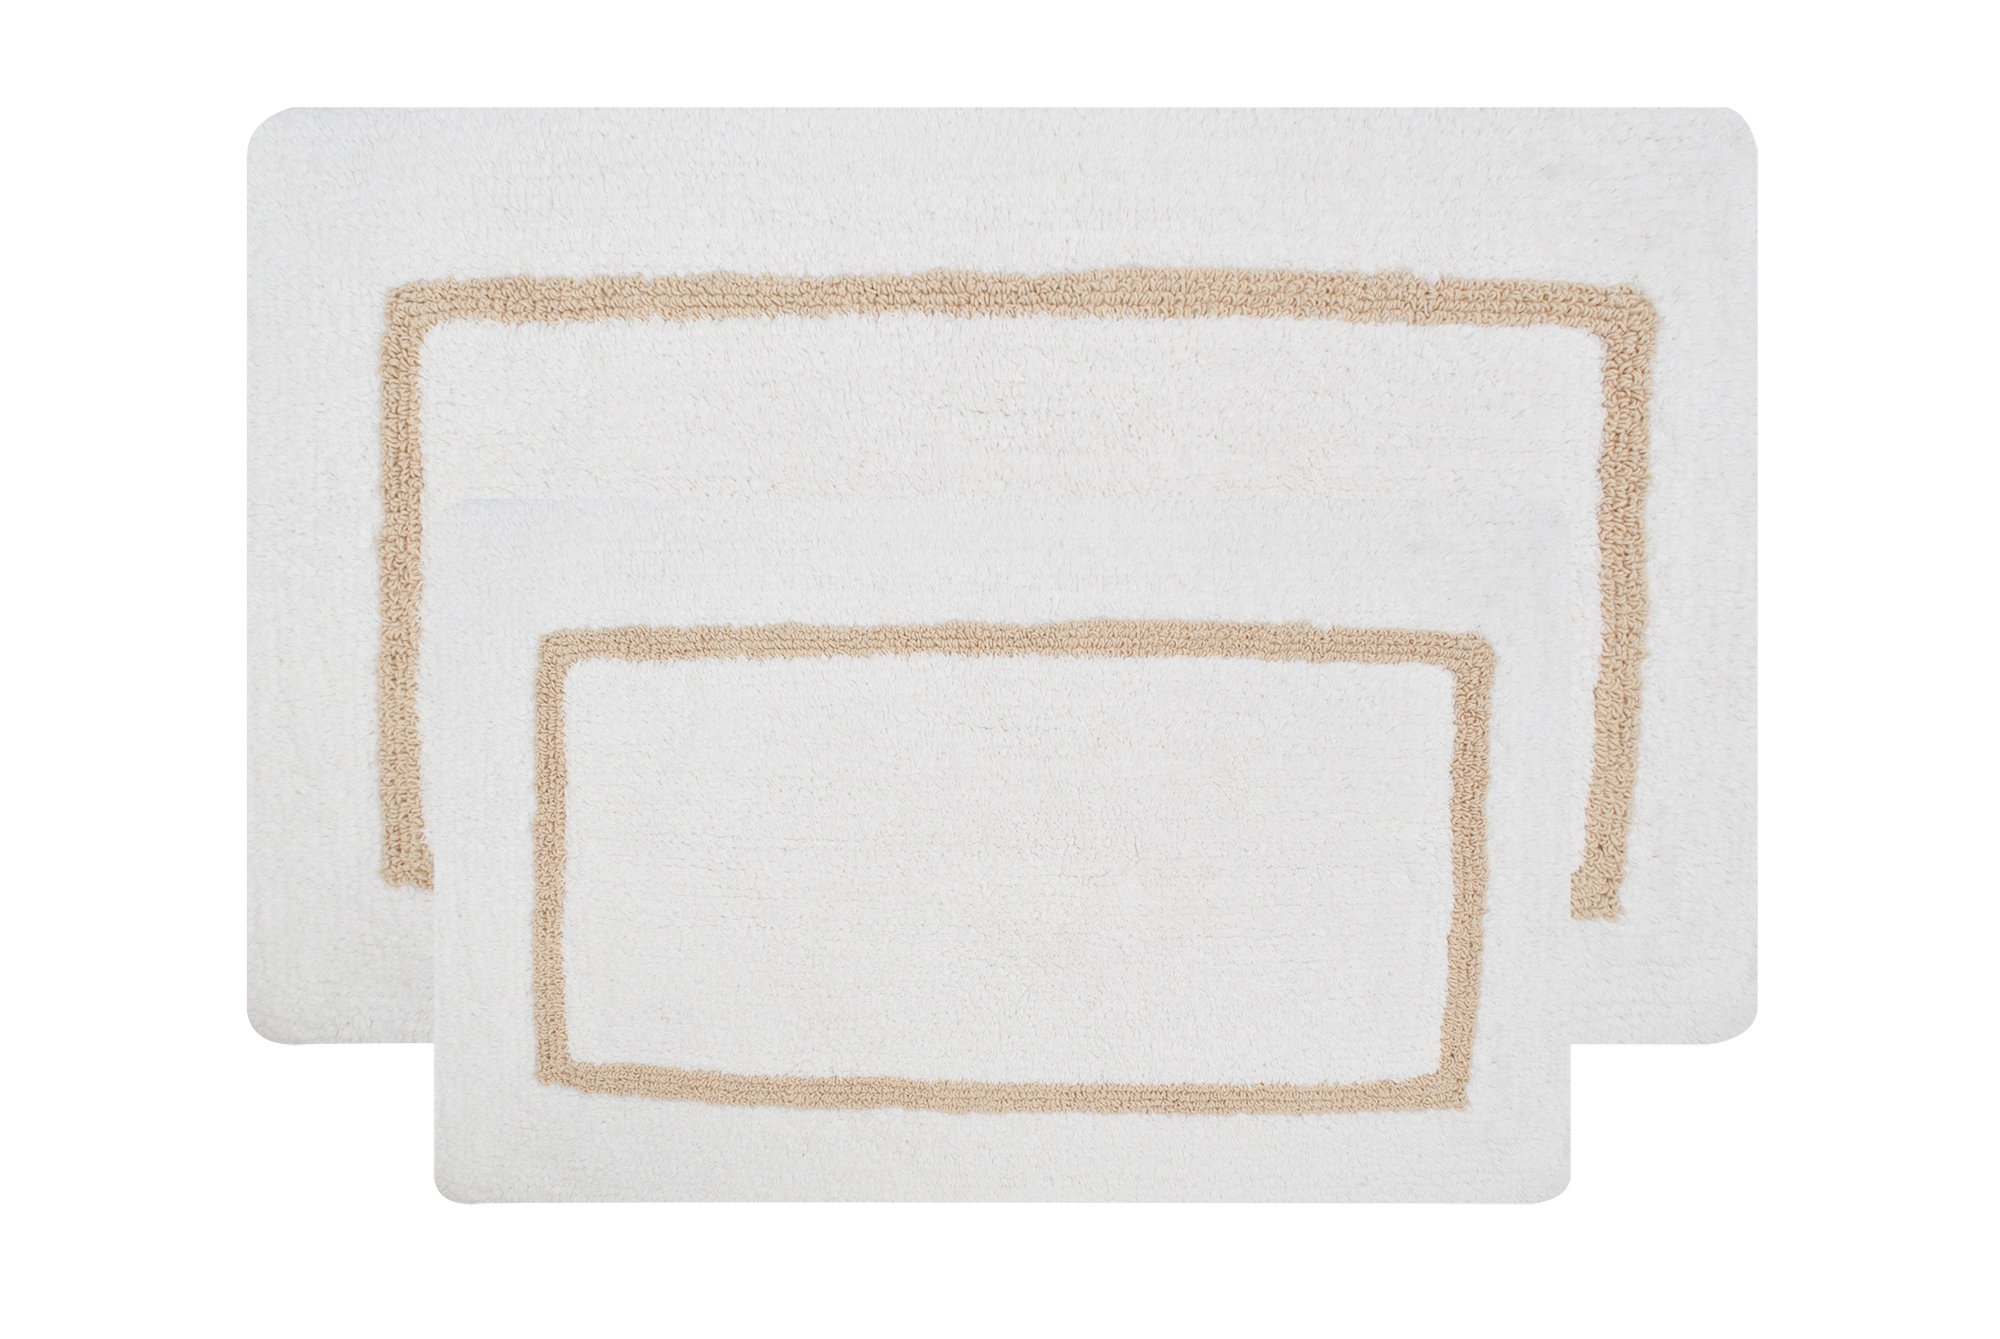 Value Homezz ( 2 Piece Bathmat Set ) Comely 100% Cotton Tufted Accent Bath Rugs Size 21 x 34 / 17 x 24 Non Skid High Absorbency & Durable Machine washable Bath Mat (White Beige) - CHECK OUT STOCK CLEARENCE PROMOTION BELOW!!! 2 piece Reversible White and Beige bathroom rugs set 21 x 34 / 17 x 24 Inches COMFORT: Bathroom rugs Made of 100% Cotton, High Water Absorbency. Our Bathroom Mats are Tufted of Cotton yarn which feels sublimely soft underfoot QUALITY: 2000 GSM (Grams Per Square Meter) Bathroom Rugs - bathroom-linens, bathroom, bath-mats - 810%2BBkPWwiL -